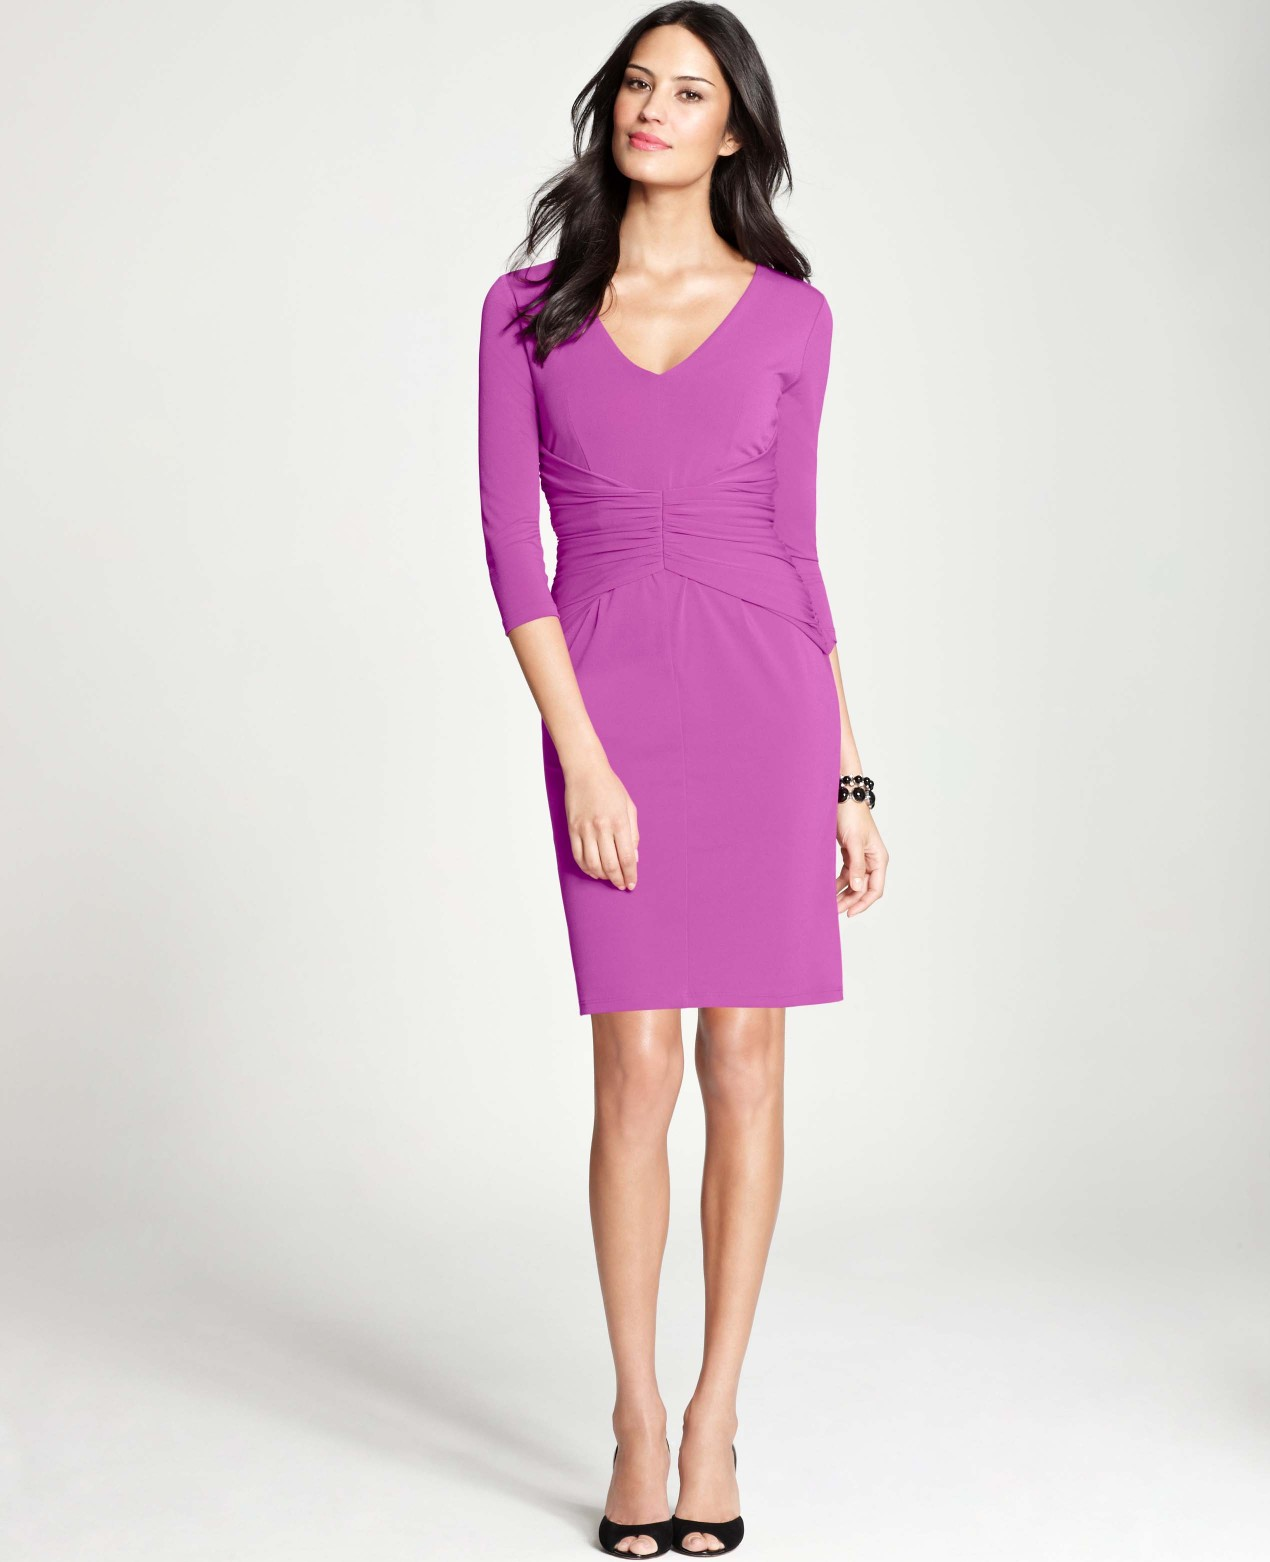 Lyst - Ann Taylor Petite Crepe Ruched Dress in Purple